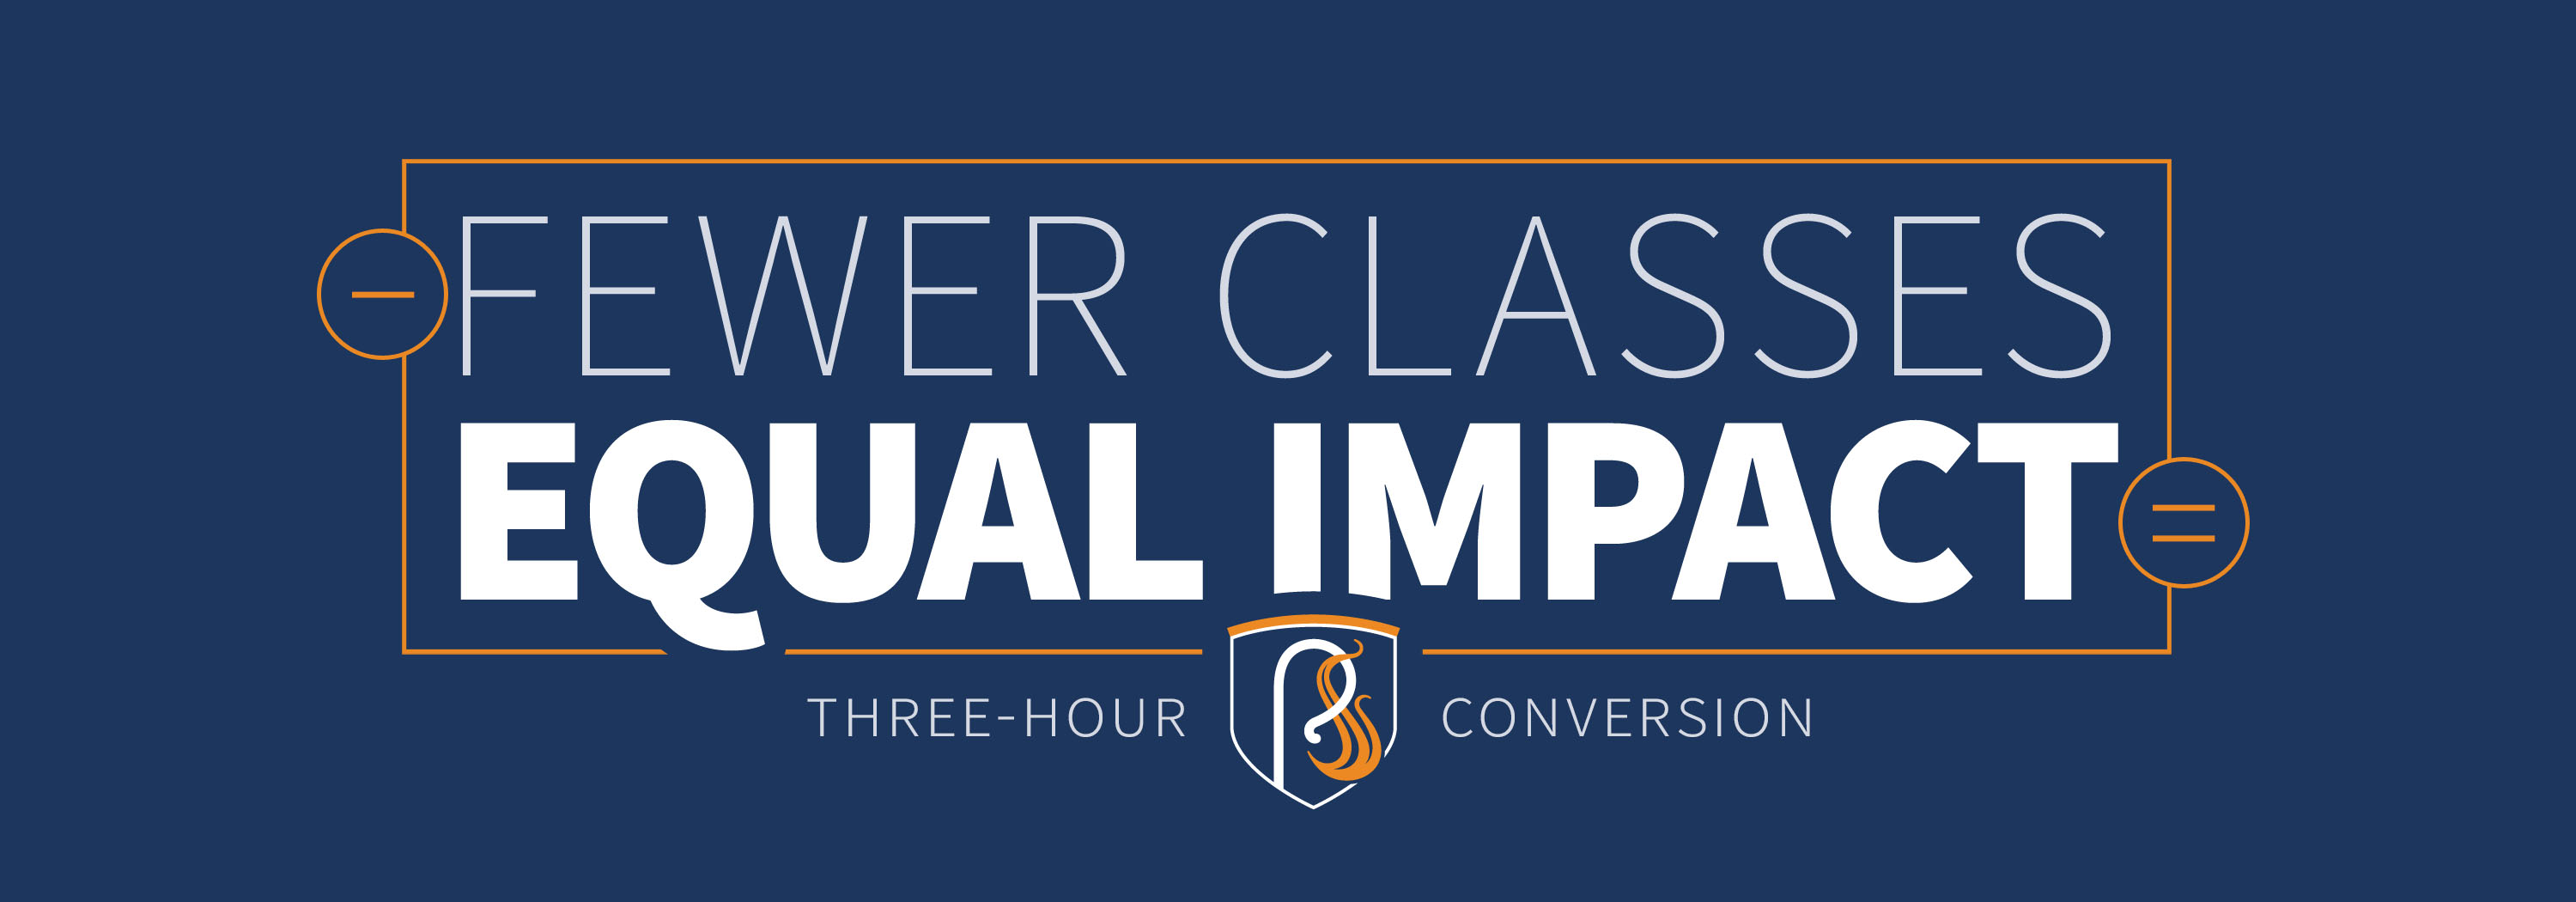 Fewer Classes, Equal Impact graphic